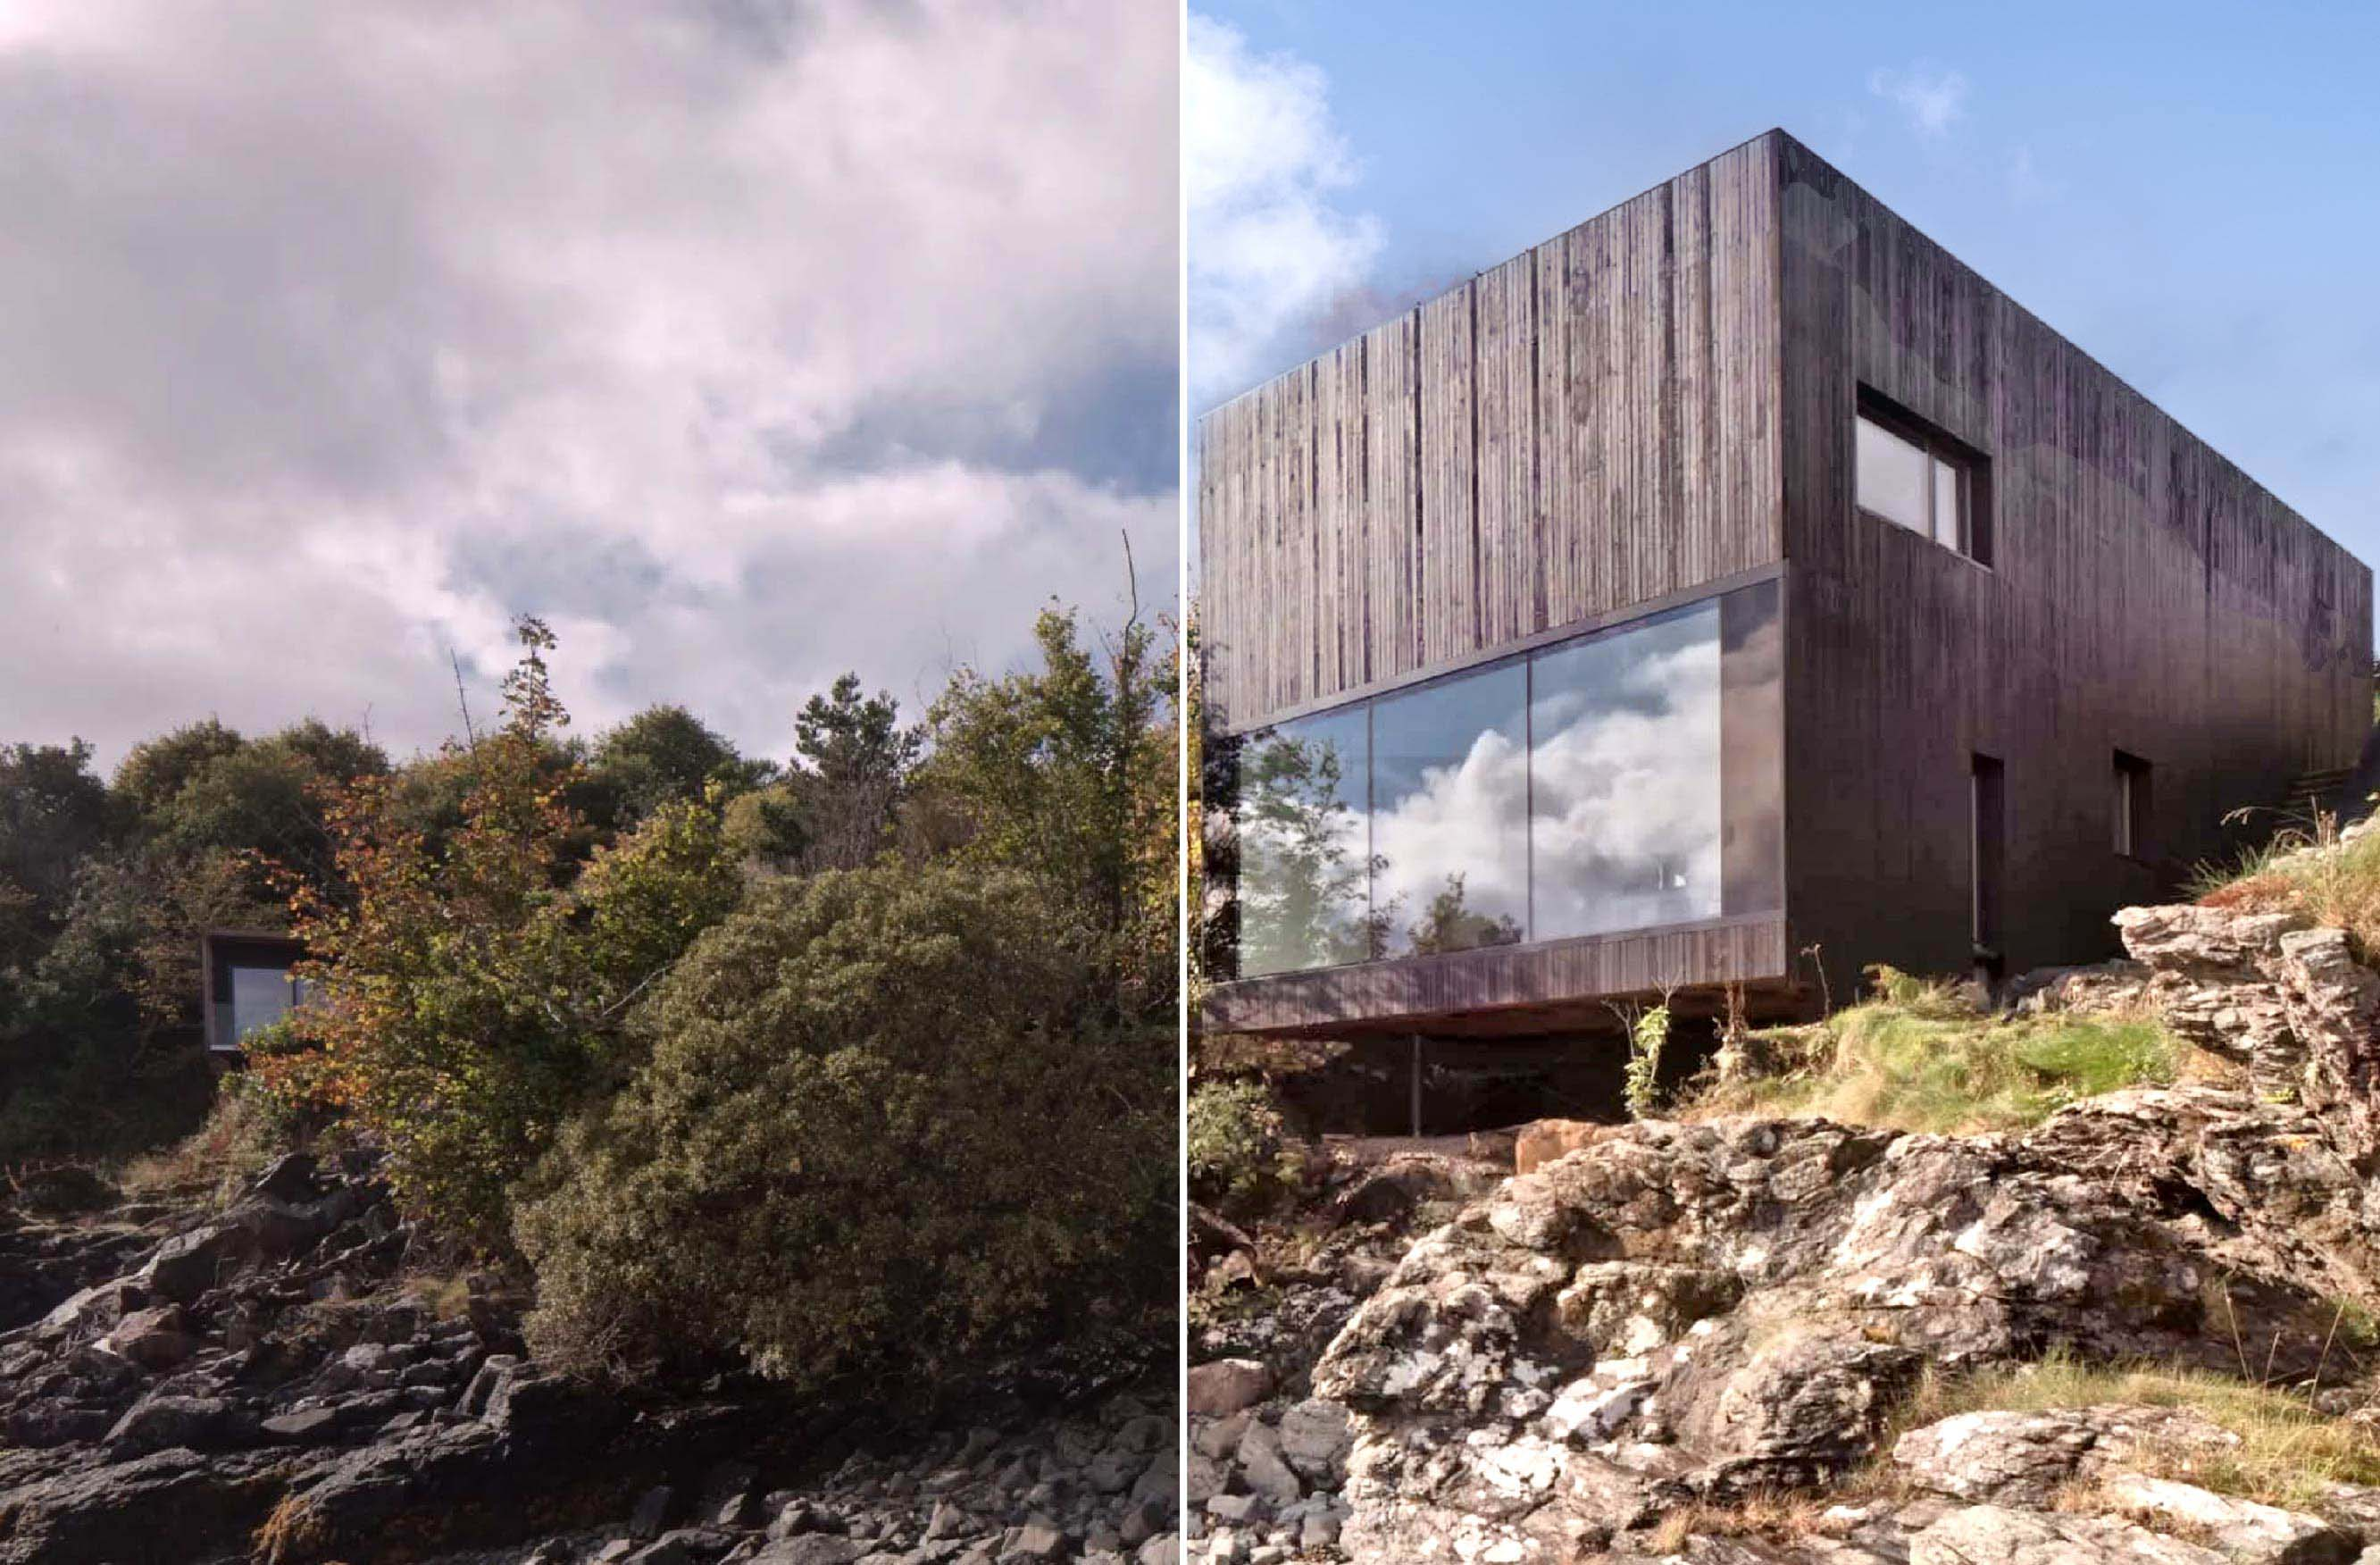 How we enhanced 3 Grand Designs property images with automated photo editing software